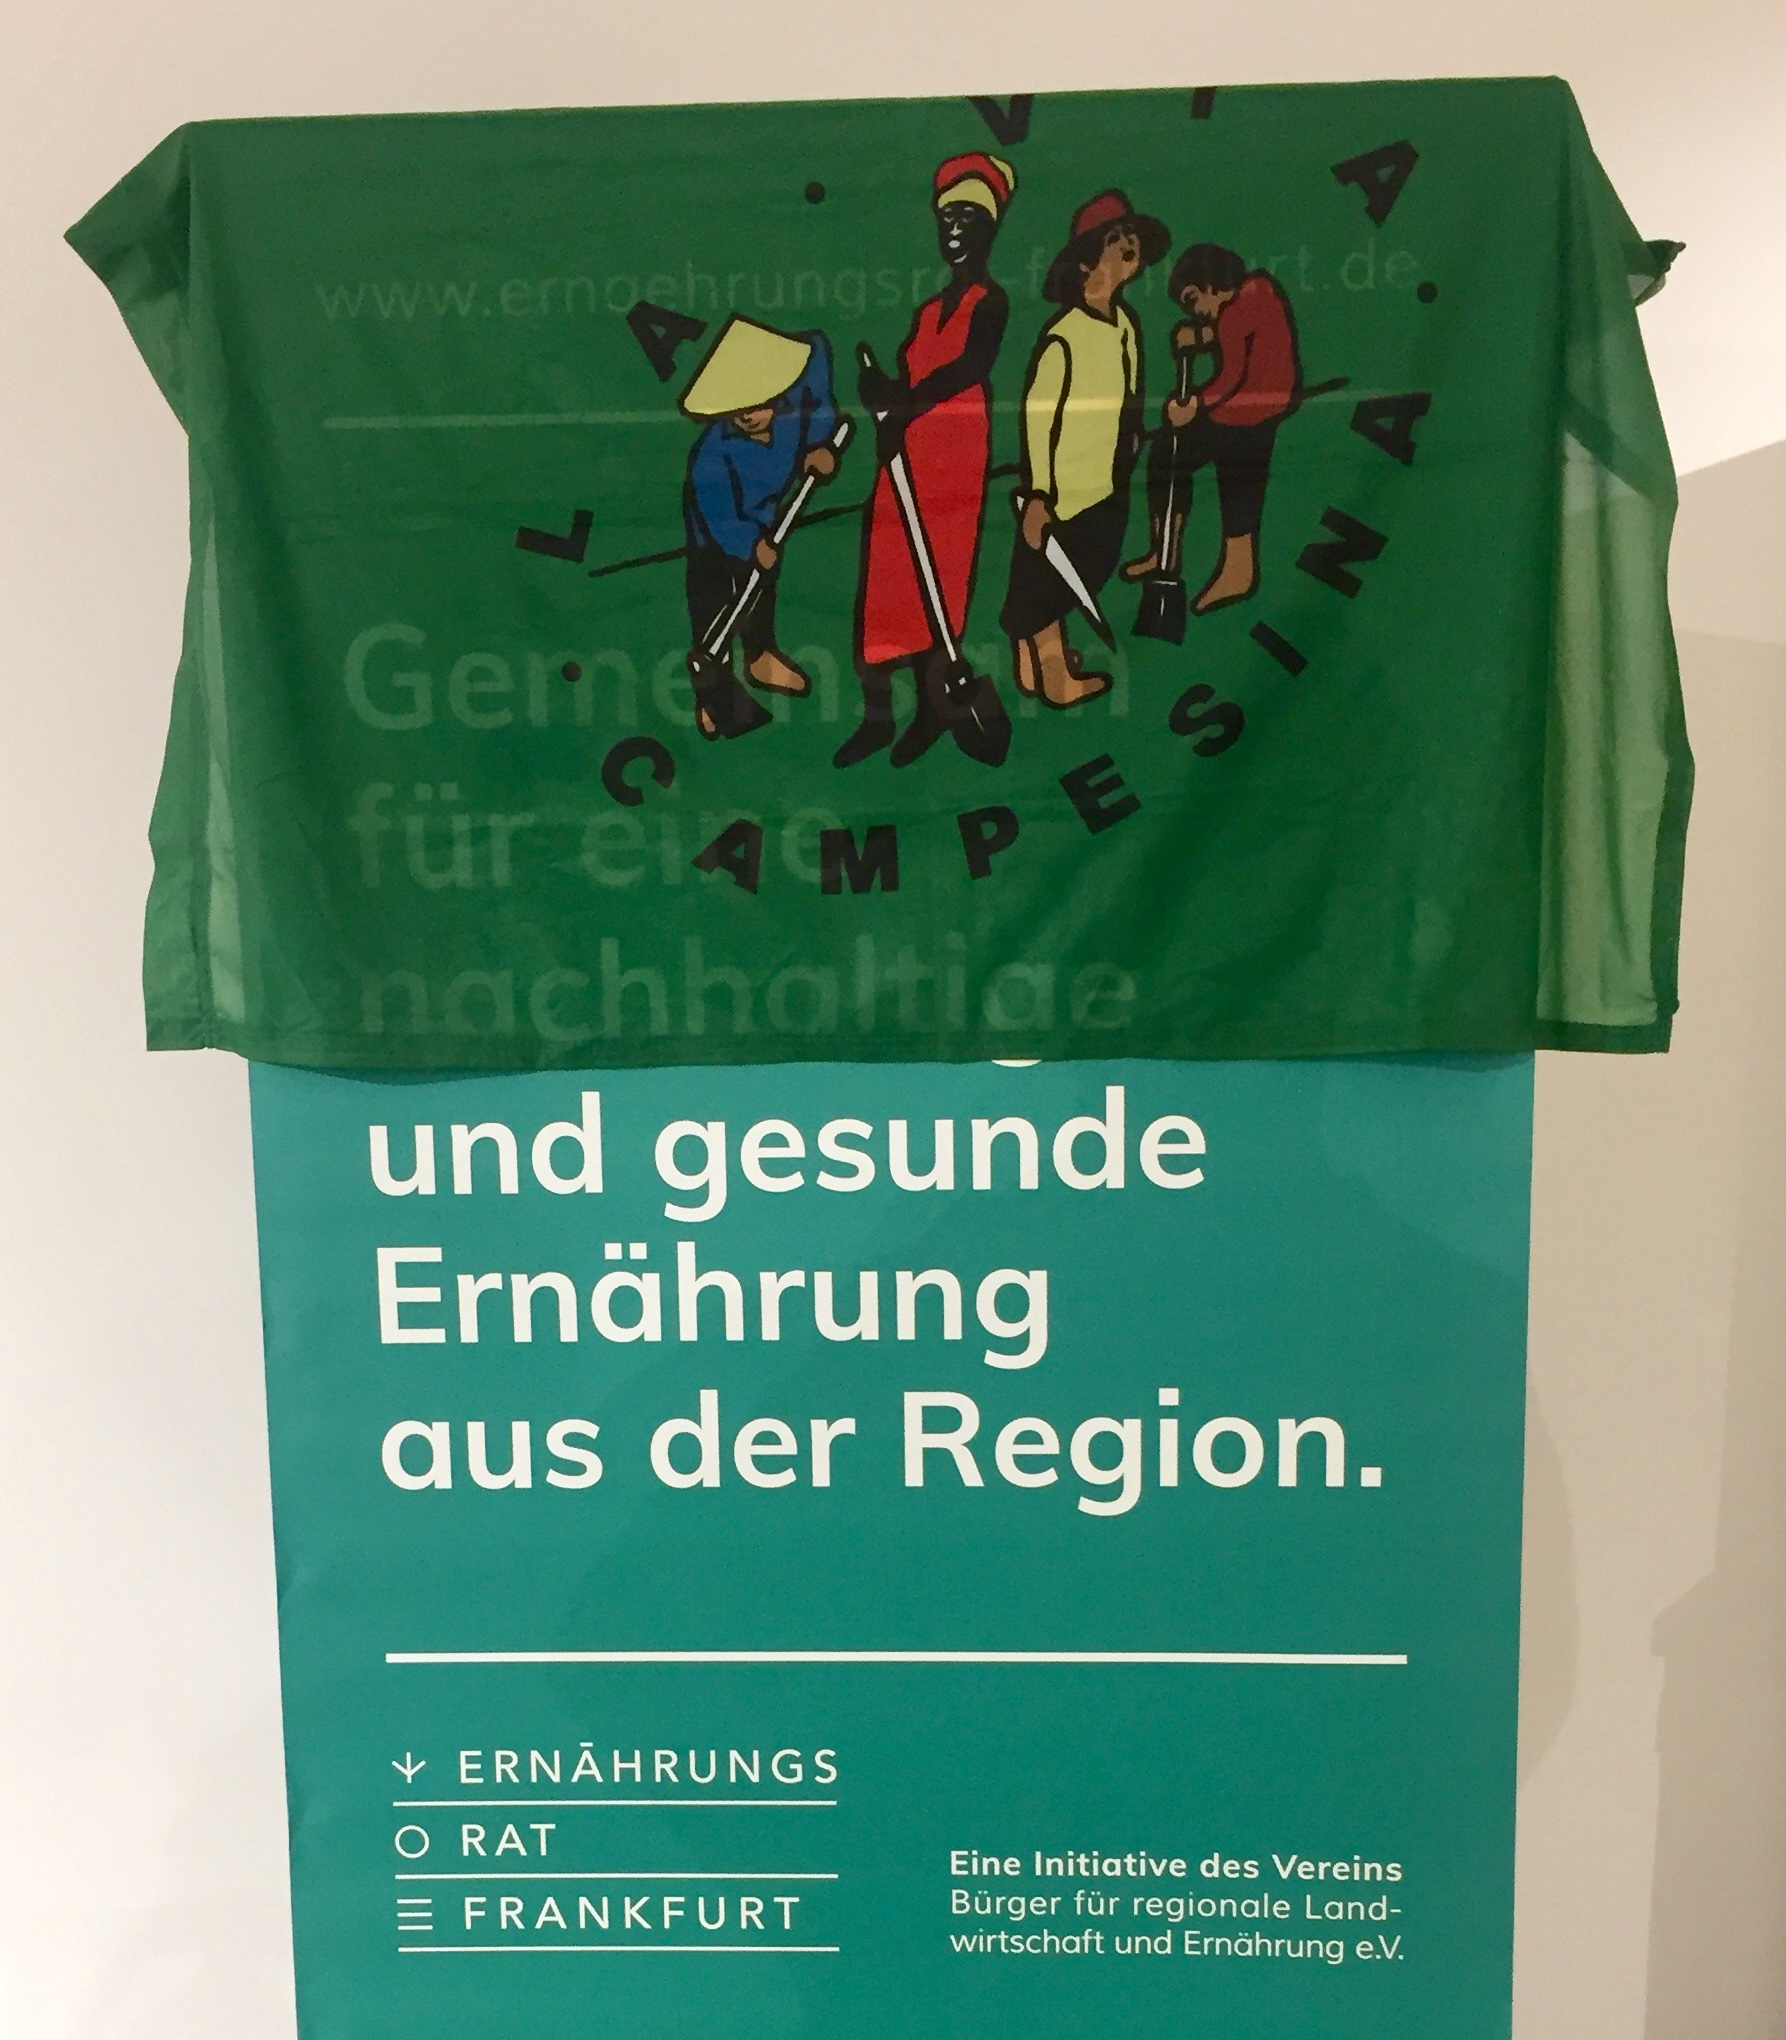 Nik Hampel, who together with his wife runs a family-owned beef farm in Vogelsburg just outside of Frankfurt, showed solidarity with the Food Sovereignty movement by draping the  La Via Campesina  flag over this Frankfurt Food Policy Council poster as he took the stage Friday evening for an open panel discussion.